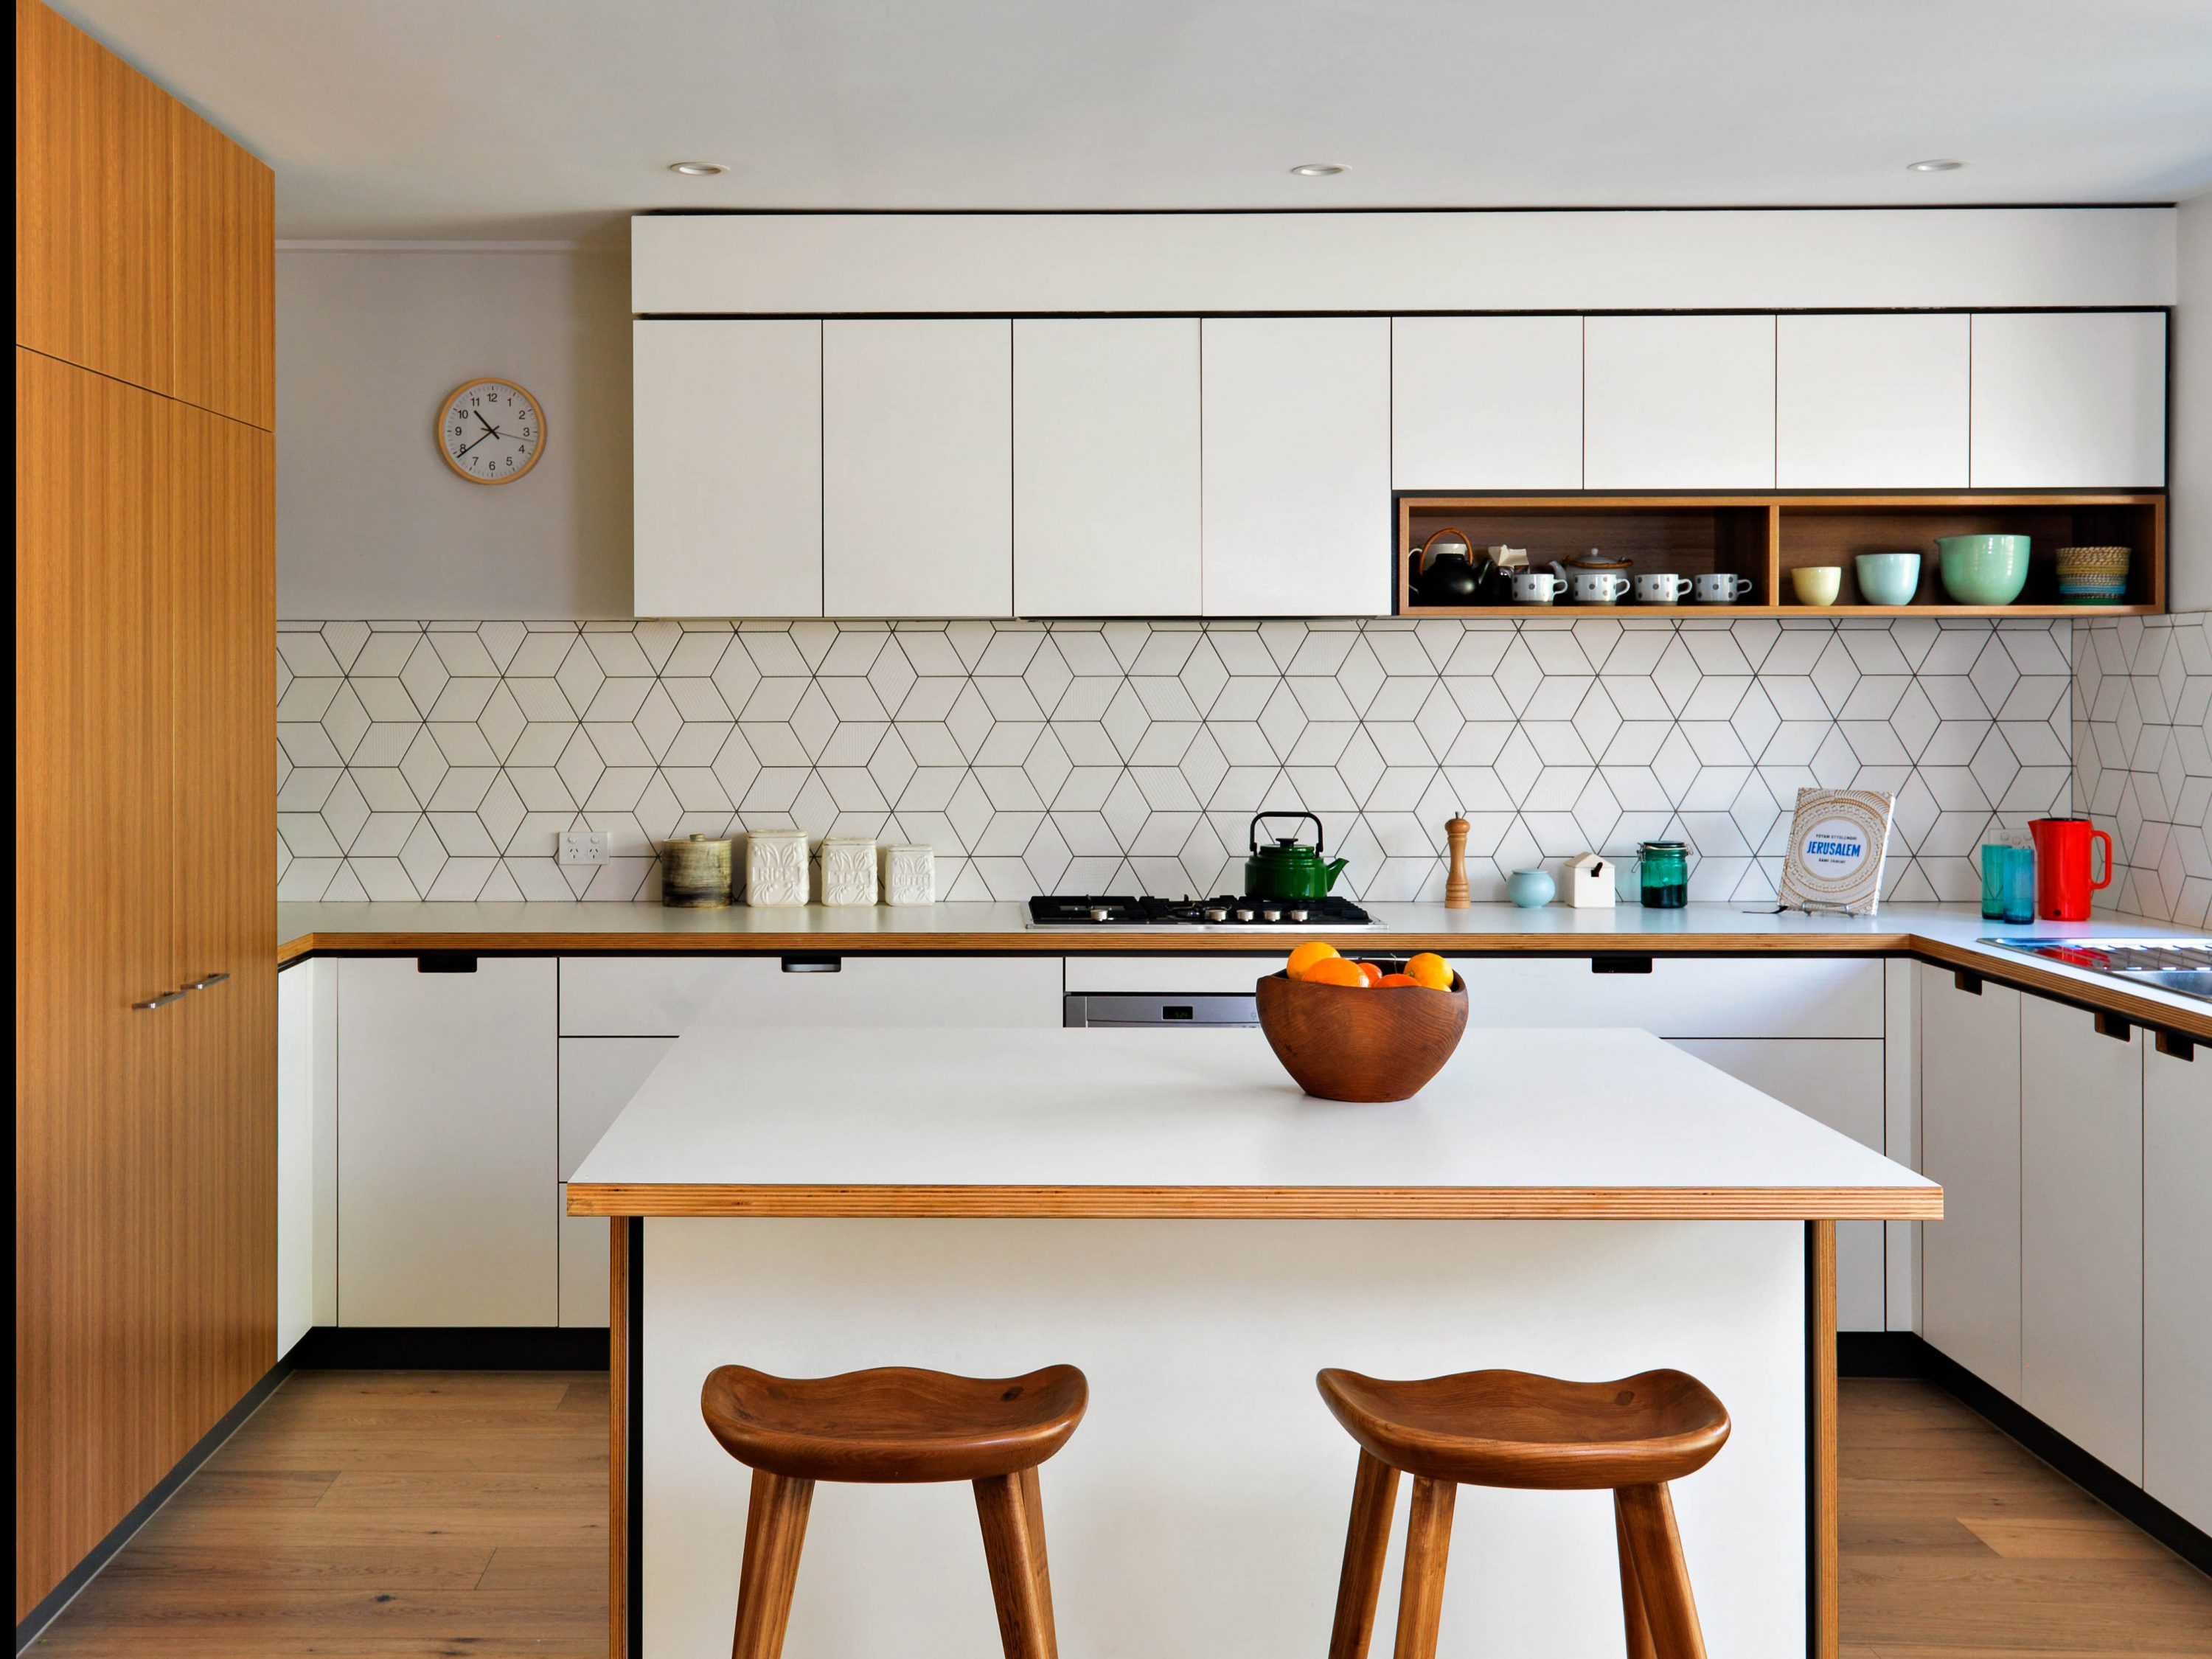 century kitchen cabinets resurface countertops how to create a mid inspired the